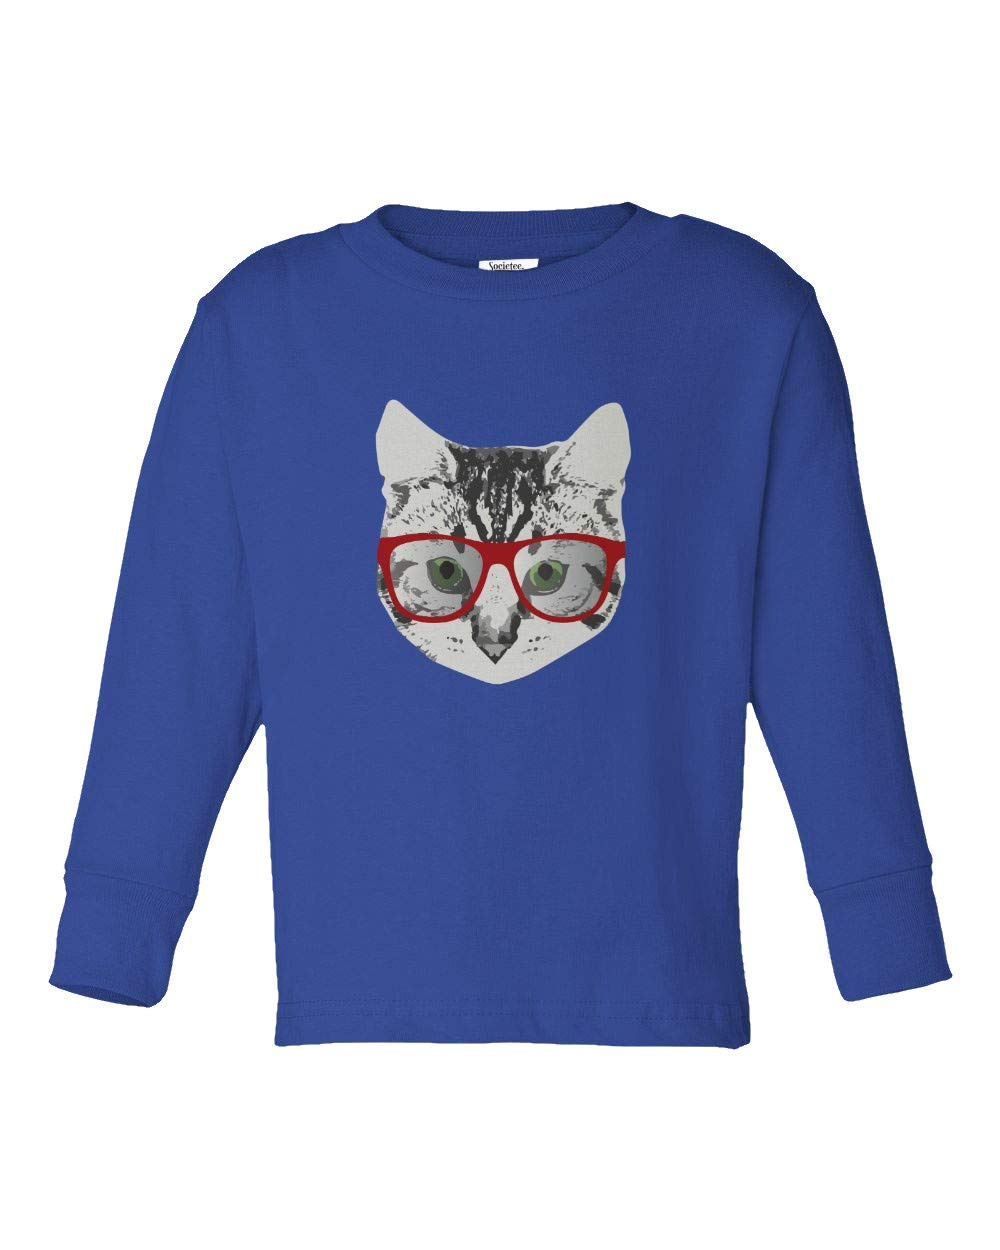 Red Linda Glasses Cat Funny Belcher Kitty Cute Humor Fun Youth & Toddler Long Sleeve Tee Shirt (Royal,3T) by Societee